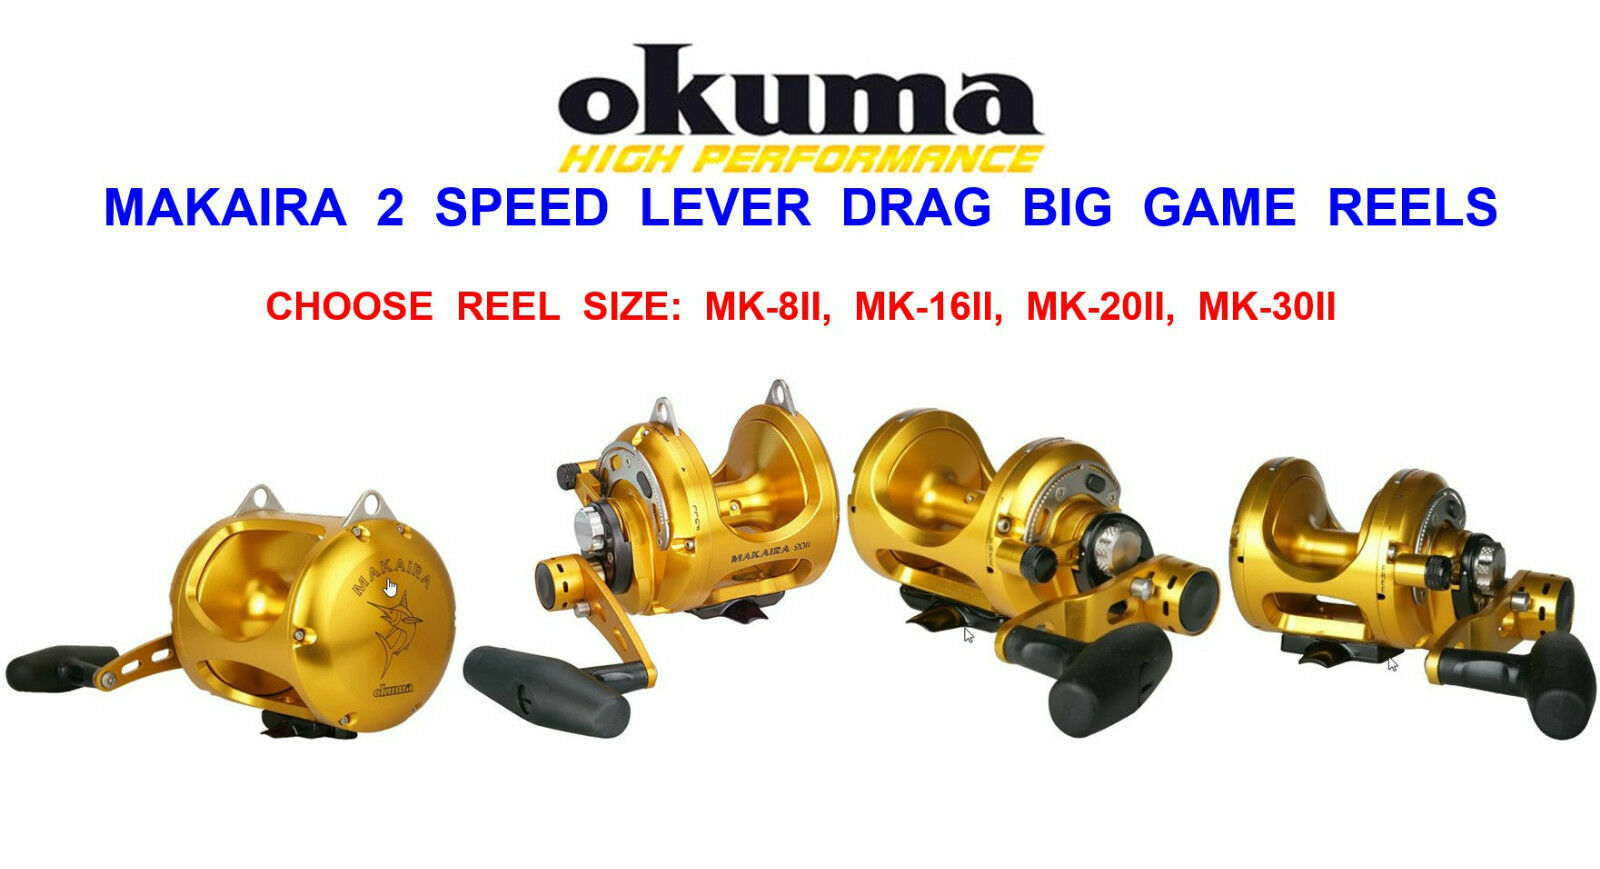 OKUMA MAKAIRA BIG GAME 2 SPEED LEVER DRAG MULTIPLIER REEL SEA BOAT ROD FISHING